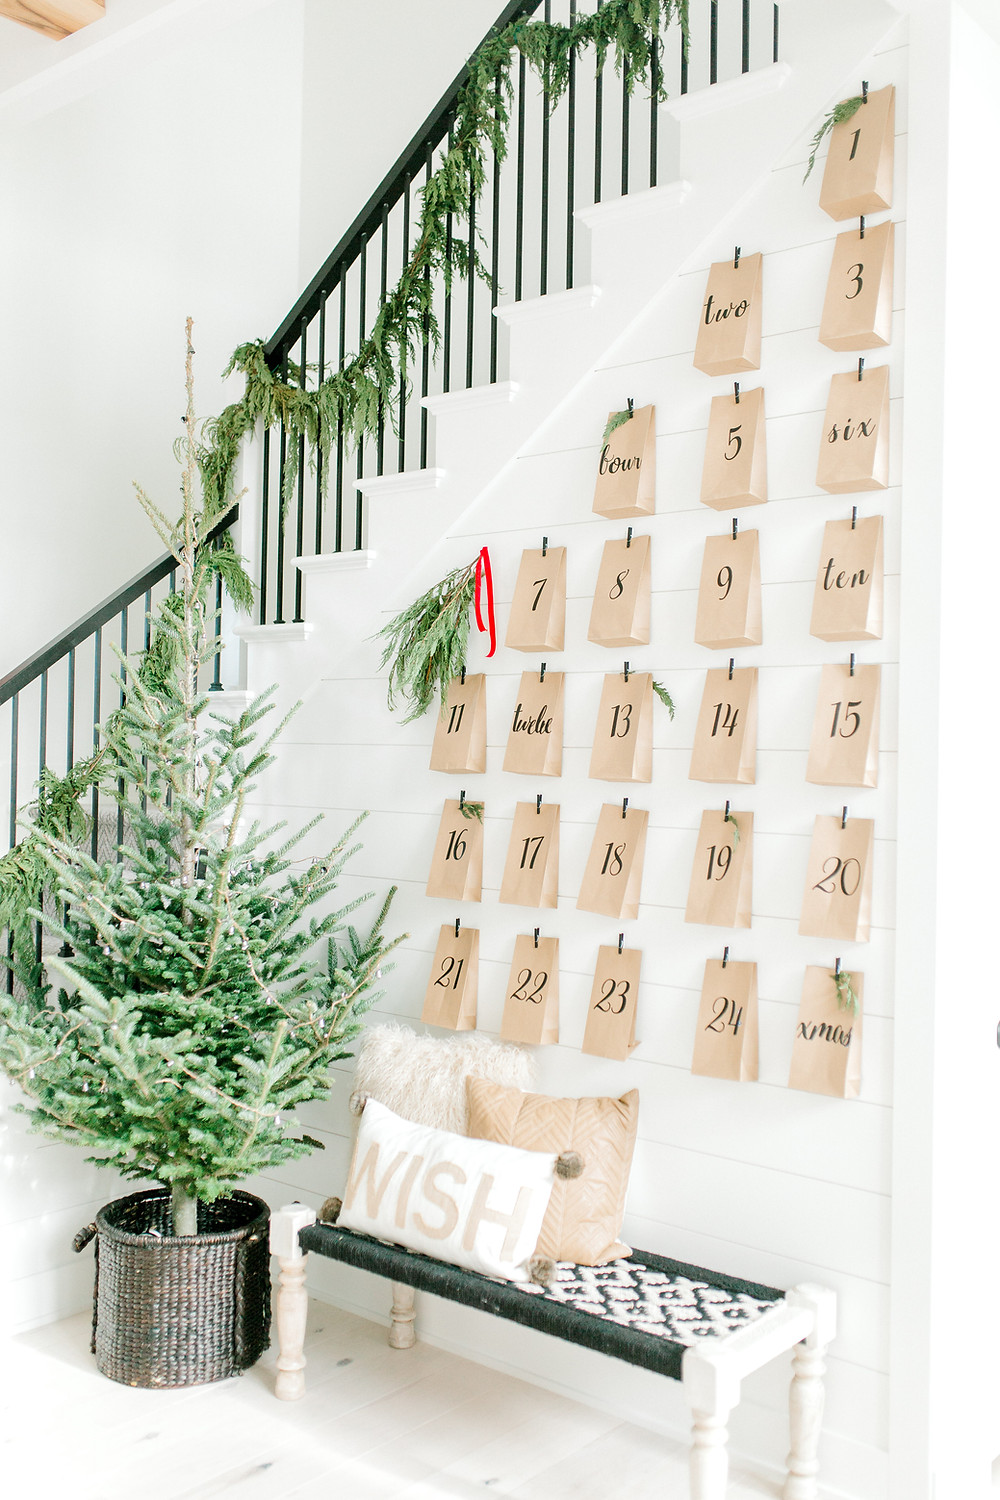 Stairs lined with garland, a small Christmas tree and brown paper bags are hung above a bench.